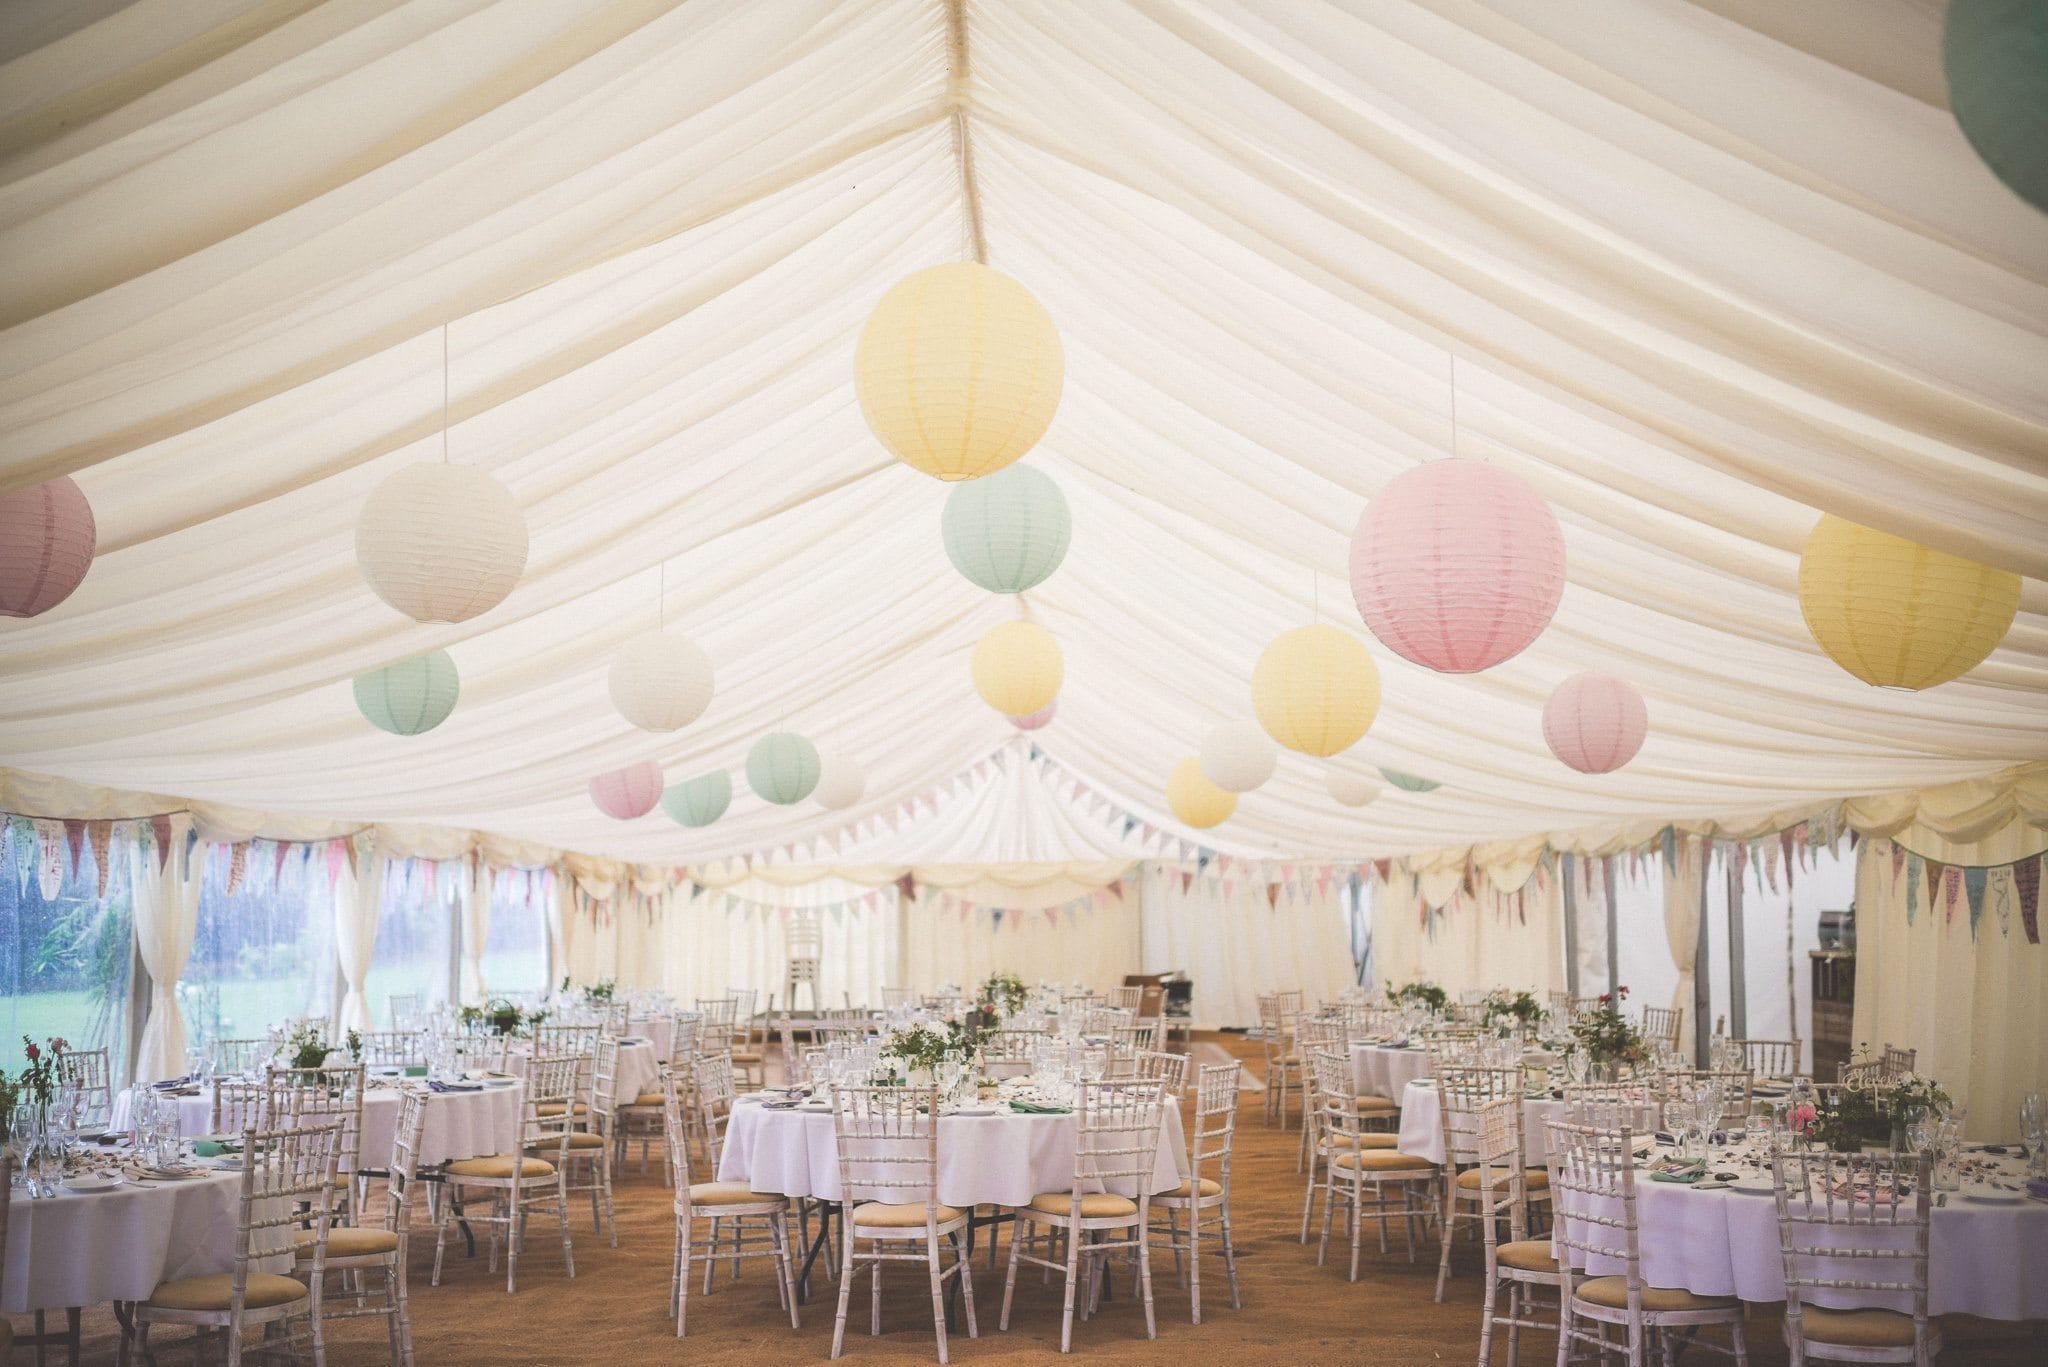 Marquee for reception decorated with hanging lanterns in pastel hues